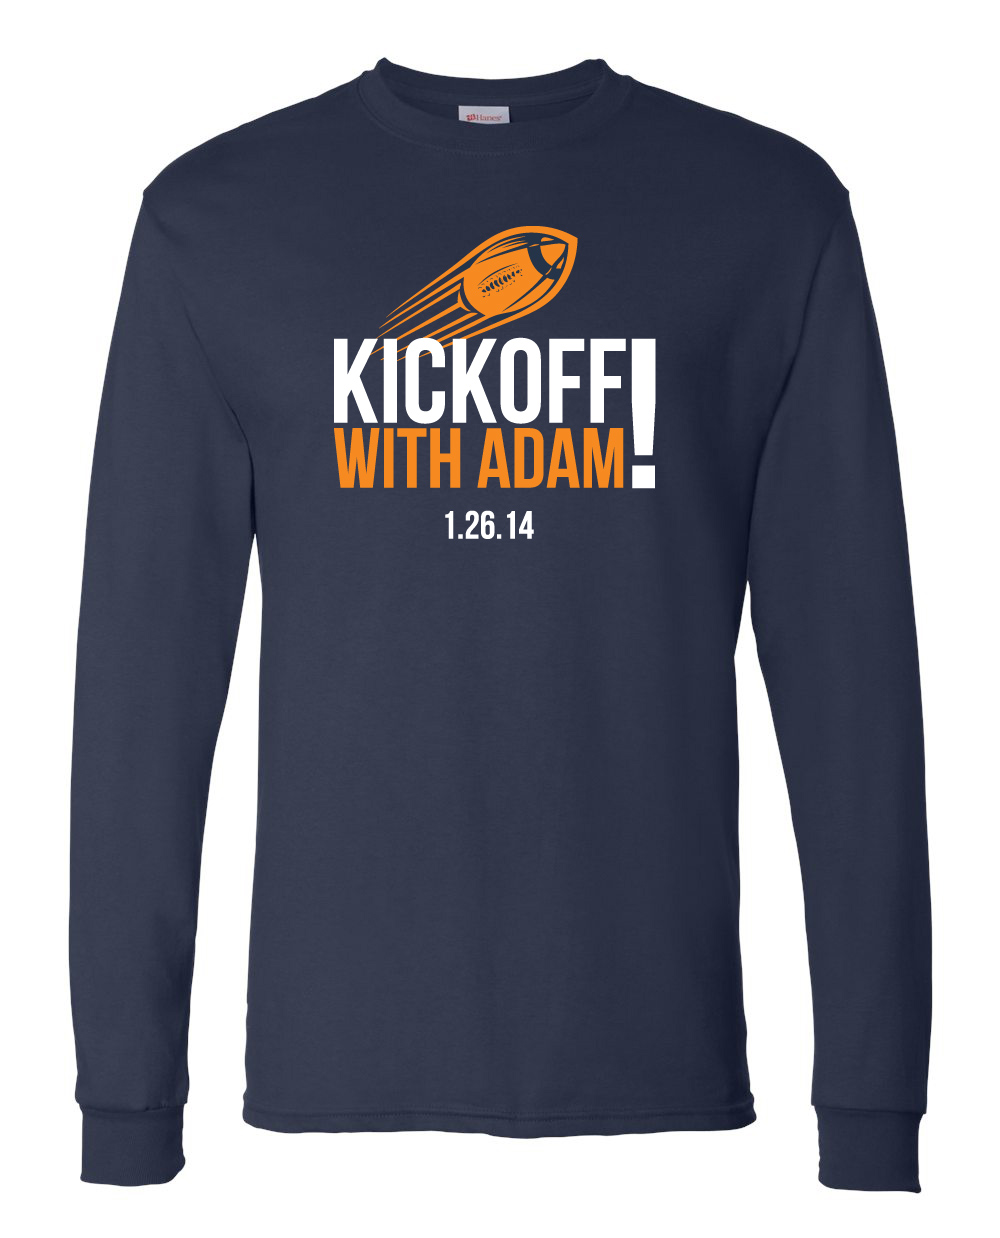 Kickoff with Adam!